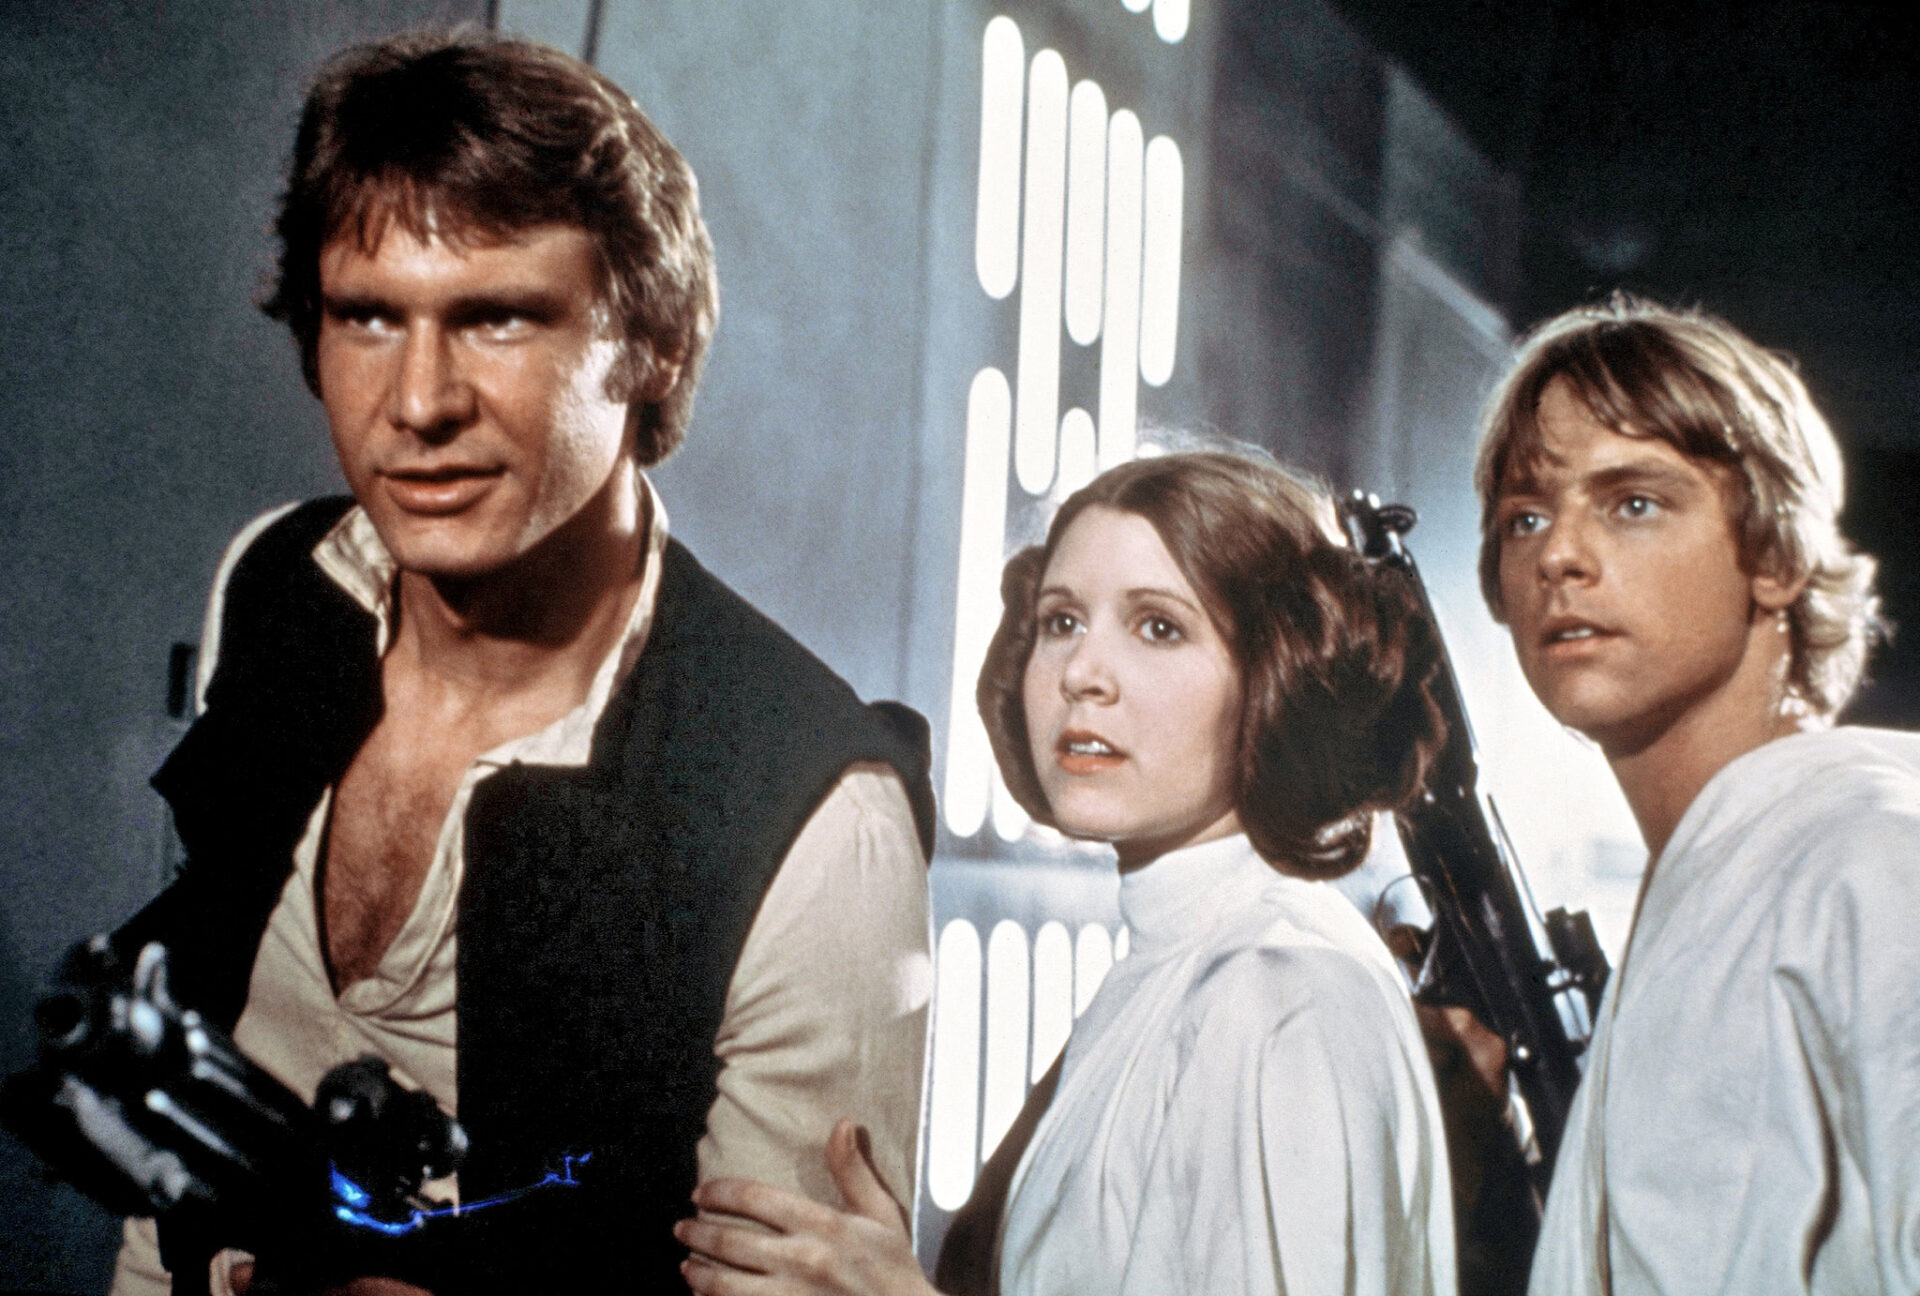 https://www.nytimes.com/2015/11/01/movies/star-wars-elvis-and-me.html